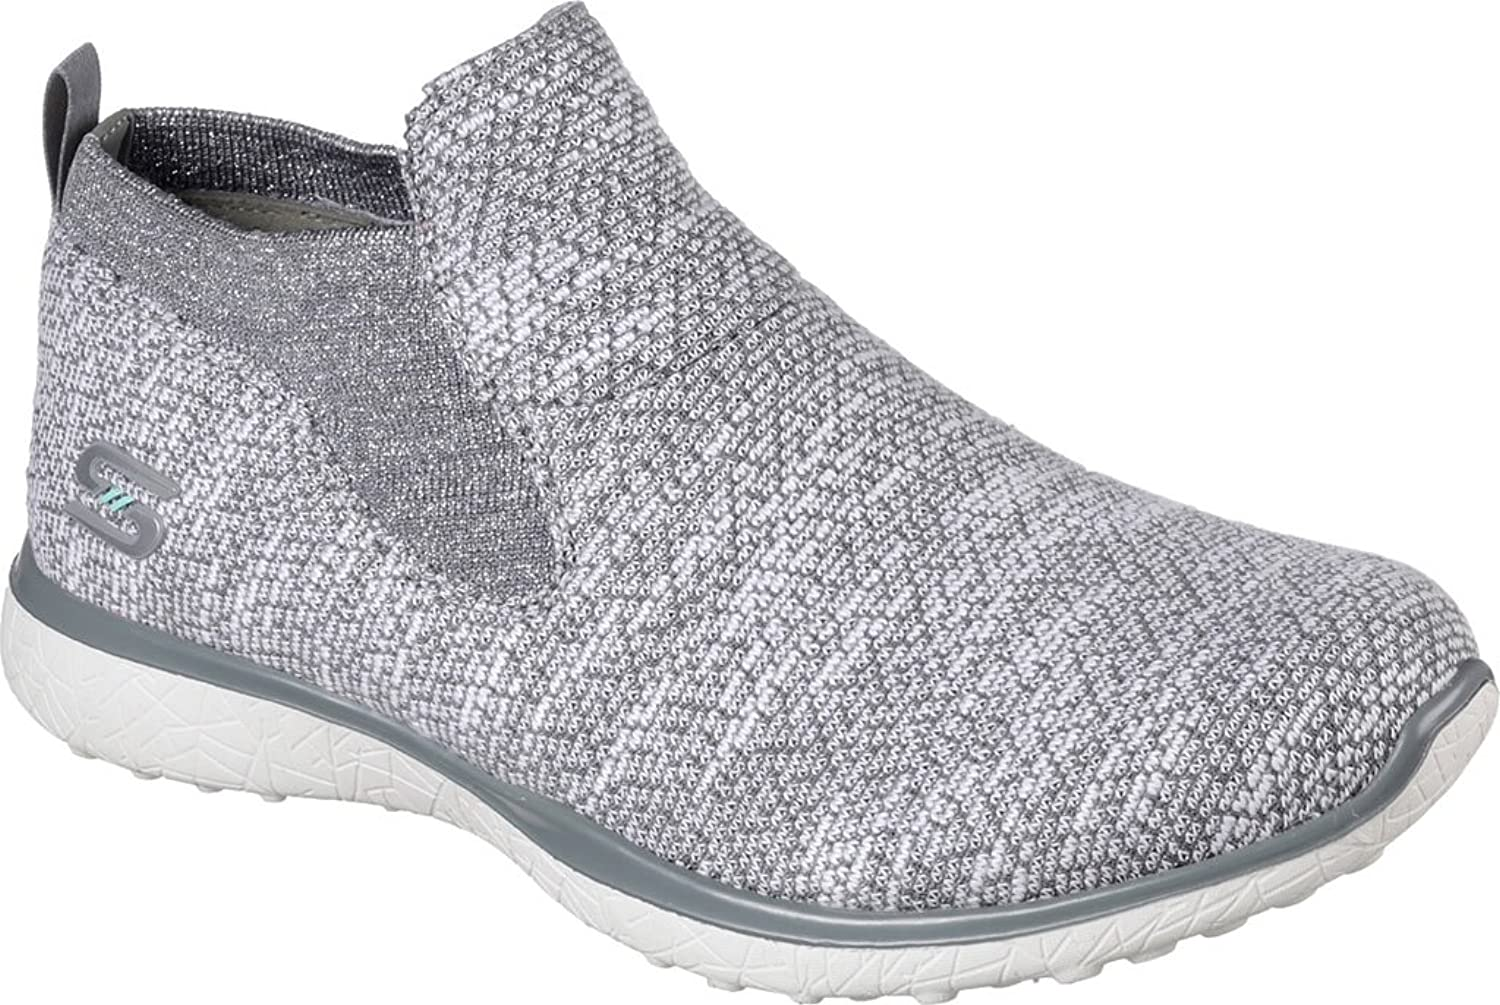 Skechers Women's Microburst - Imagination Casual shoes